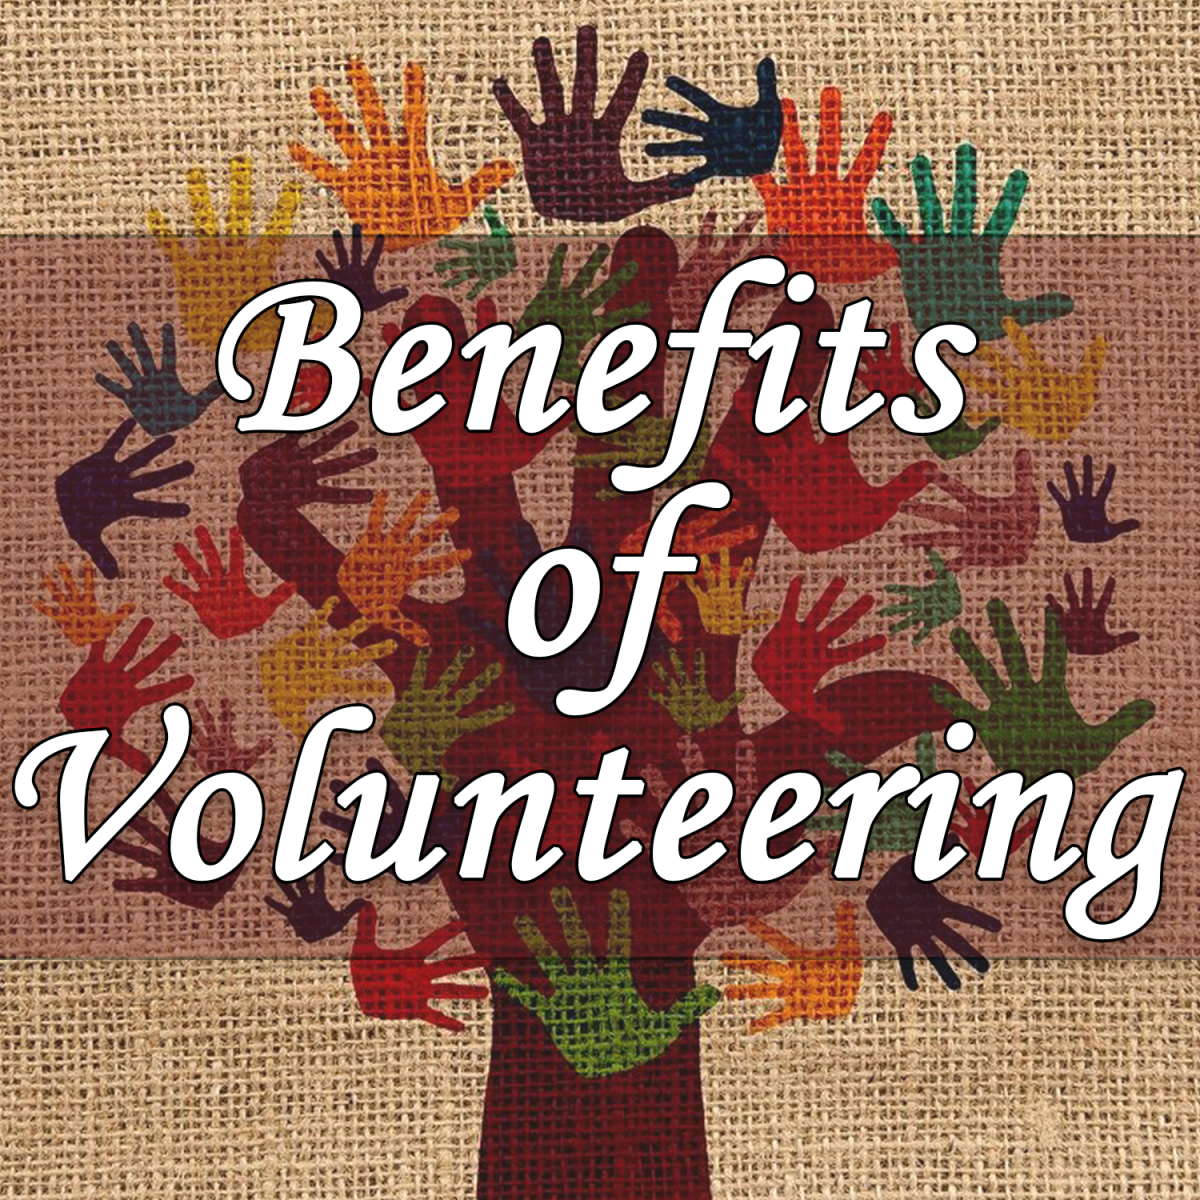 Why should you donate your time to community service?